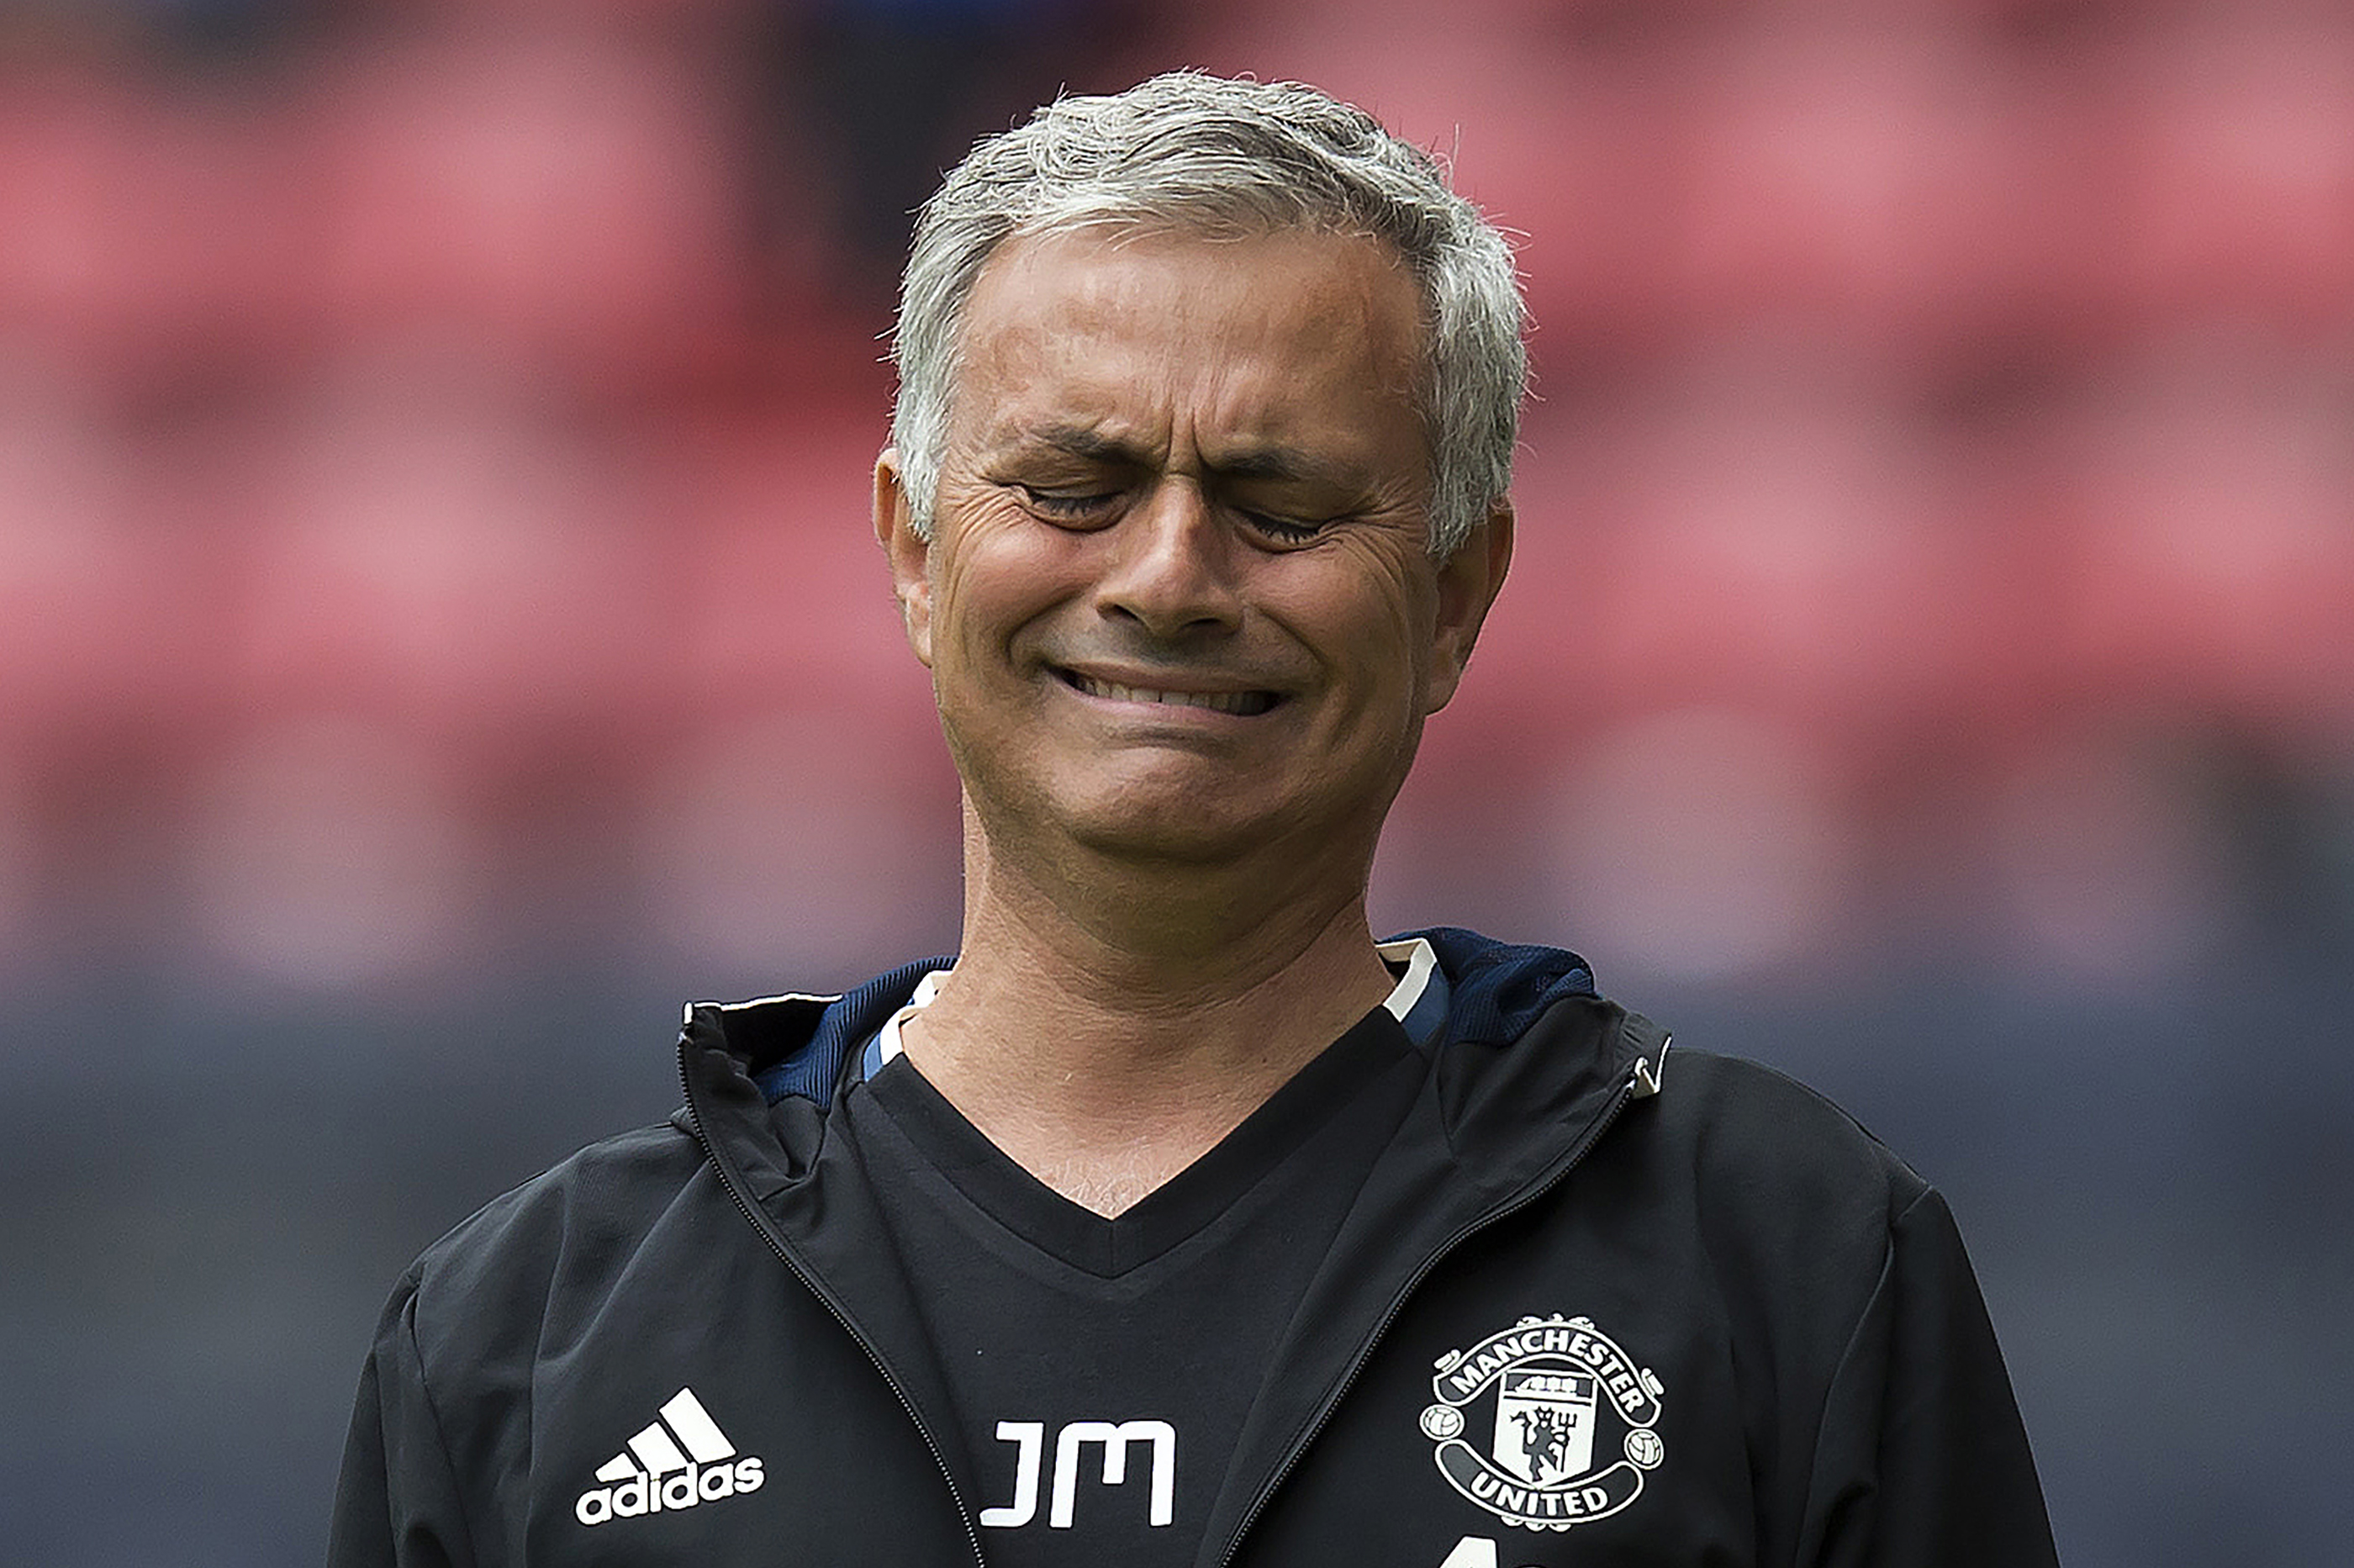 Jose Mourinho 'frustrated' by Ed Woodward's lackadaisical approach